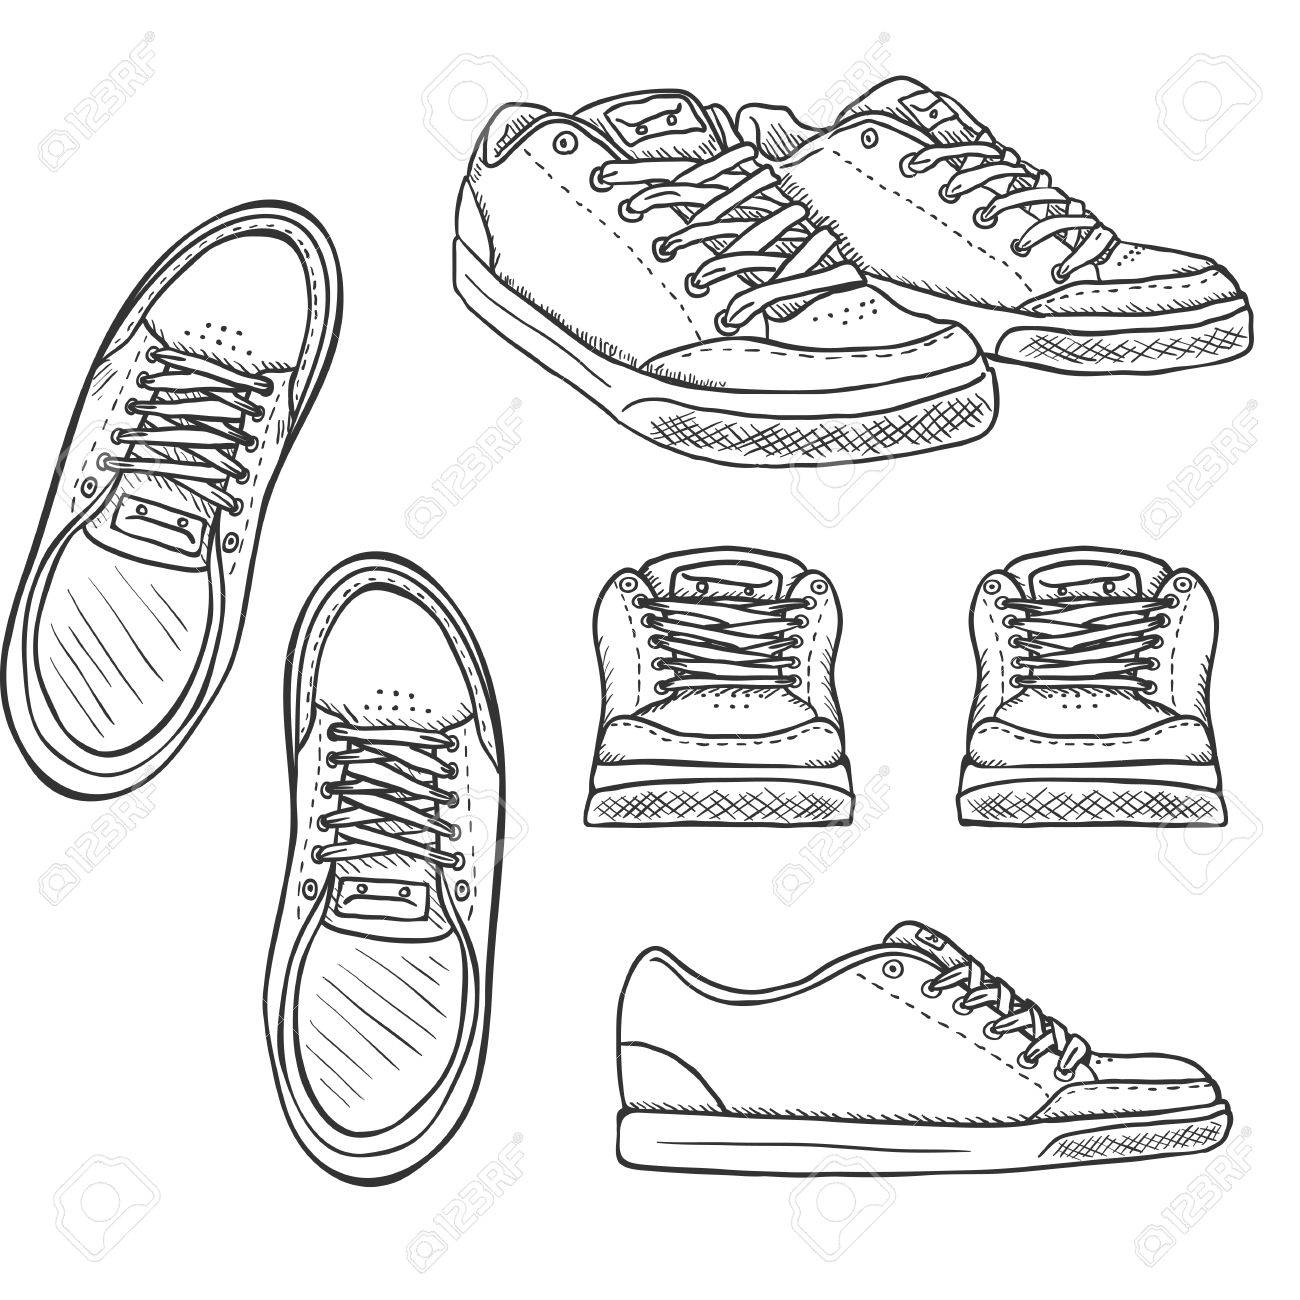 Vector Set of Sketch Skaters Shoes. Top, Side and Front Views.